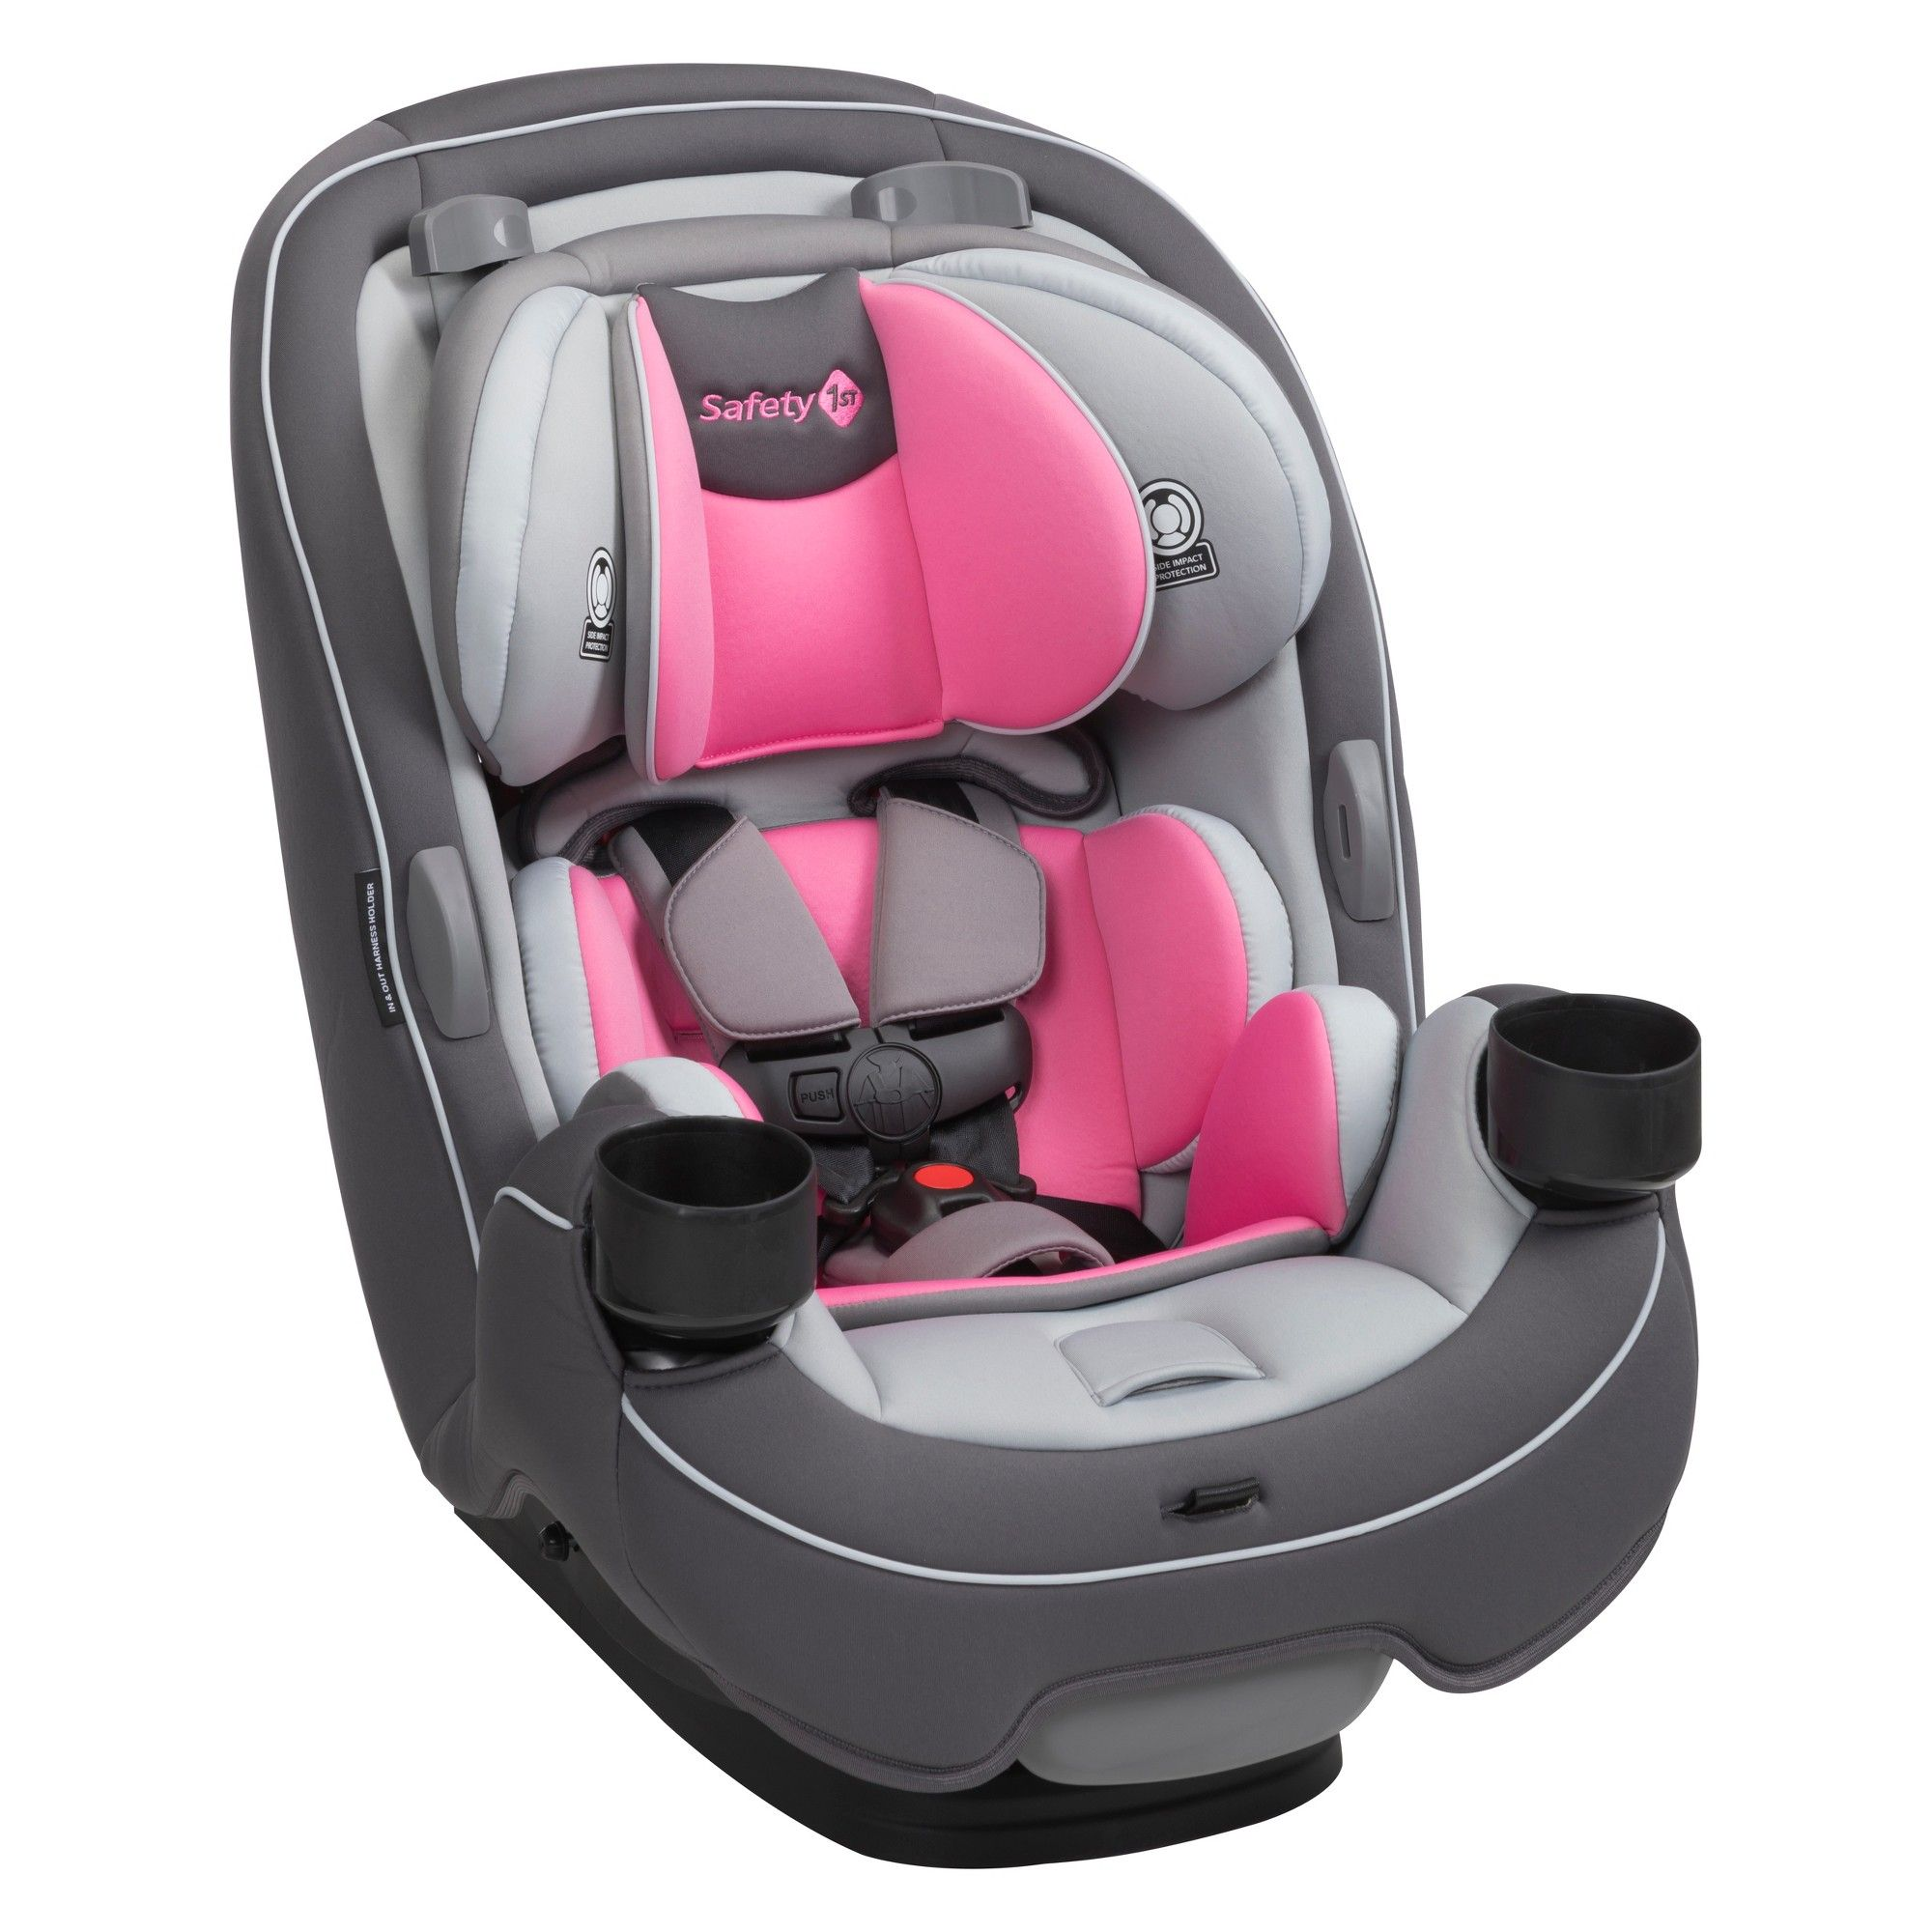 Safety 1st Grow & Go 3in1 Convertible Car Seat Carbon